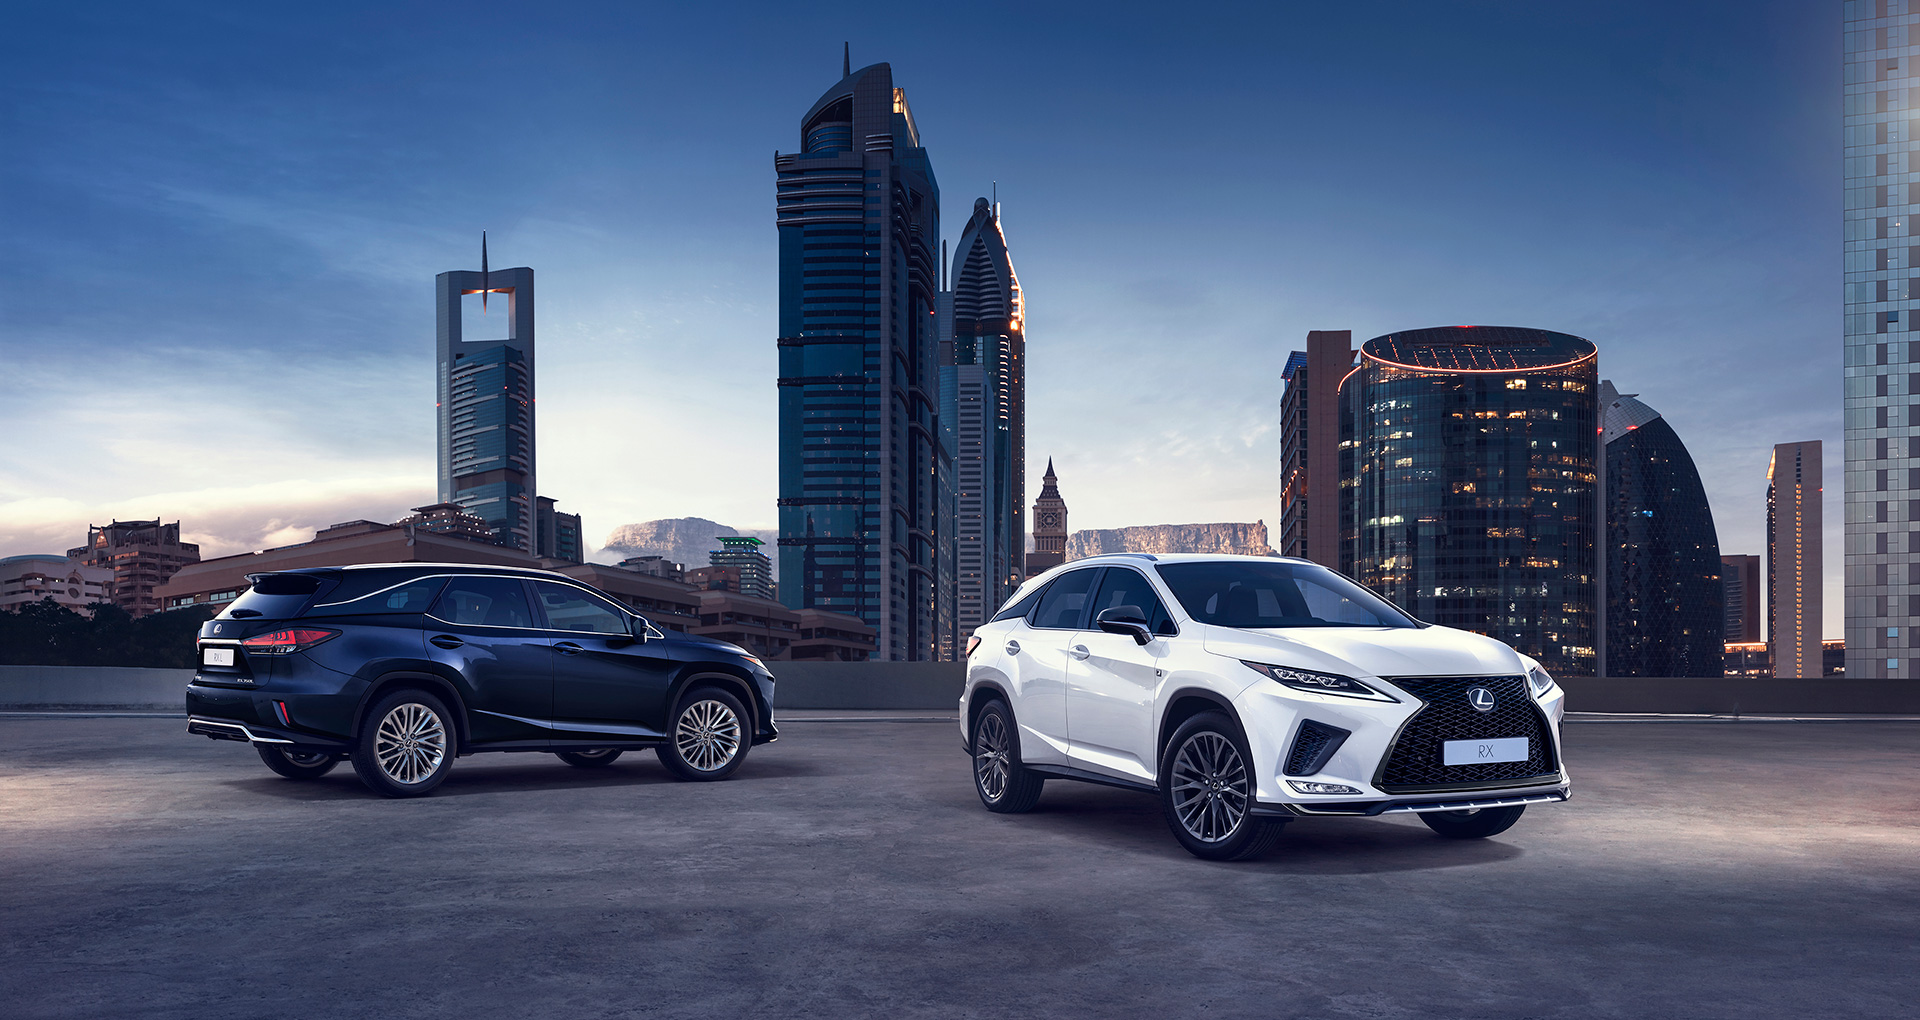 New Lexus RX Makes World DebutThe Pioneer of the Luxury SUV Segment Evolves to New Heights Equipped with the Latest Technology - Image 8